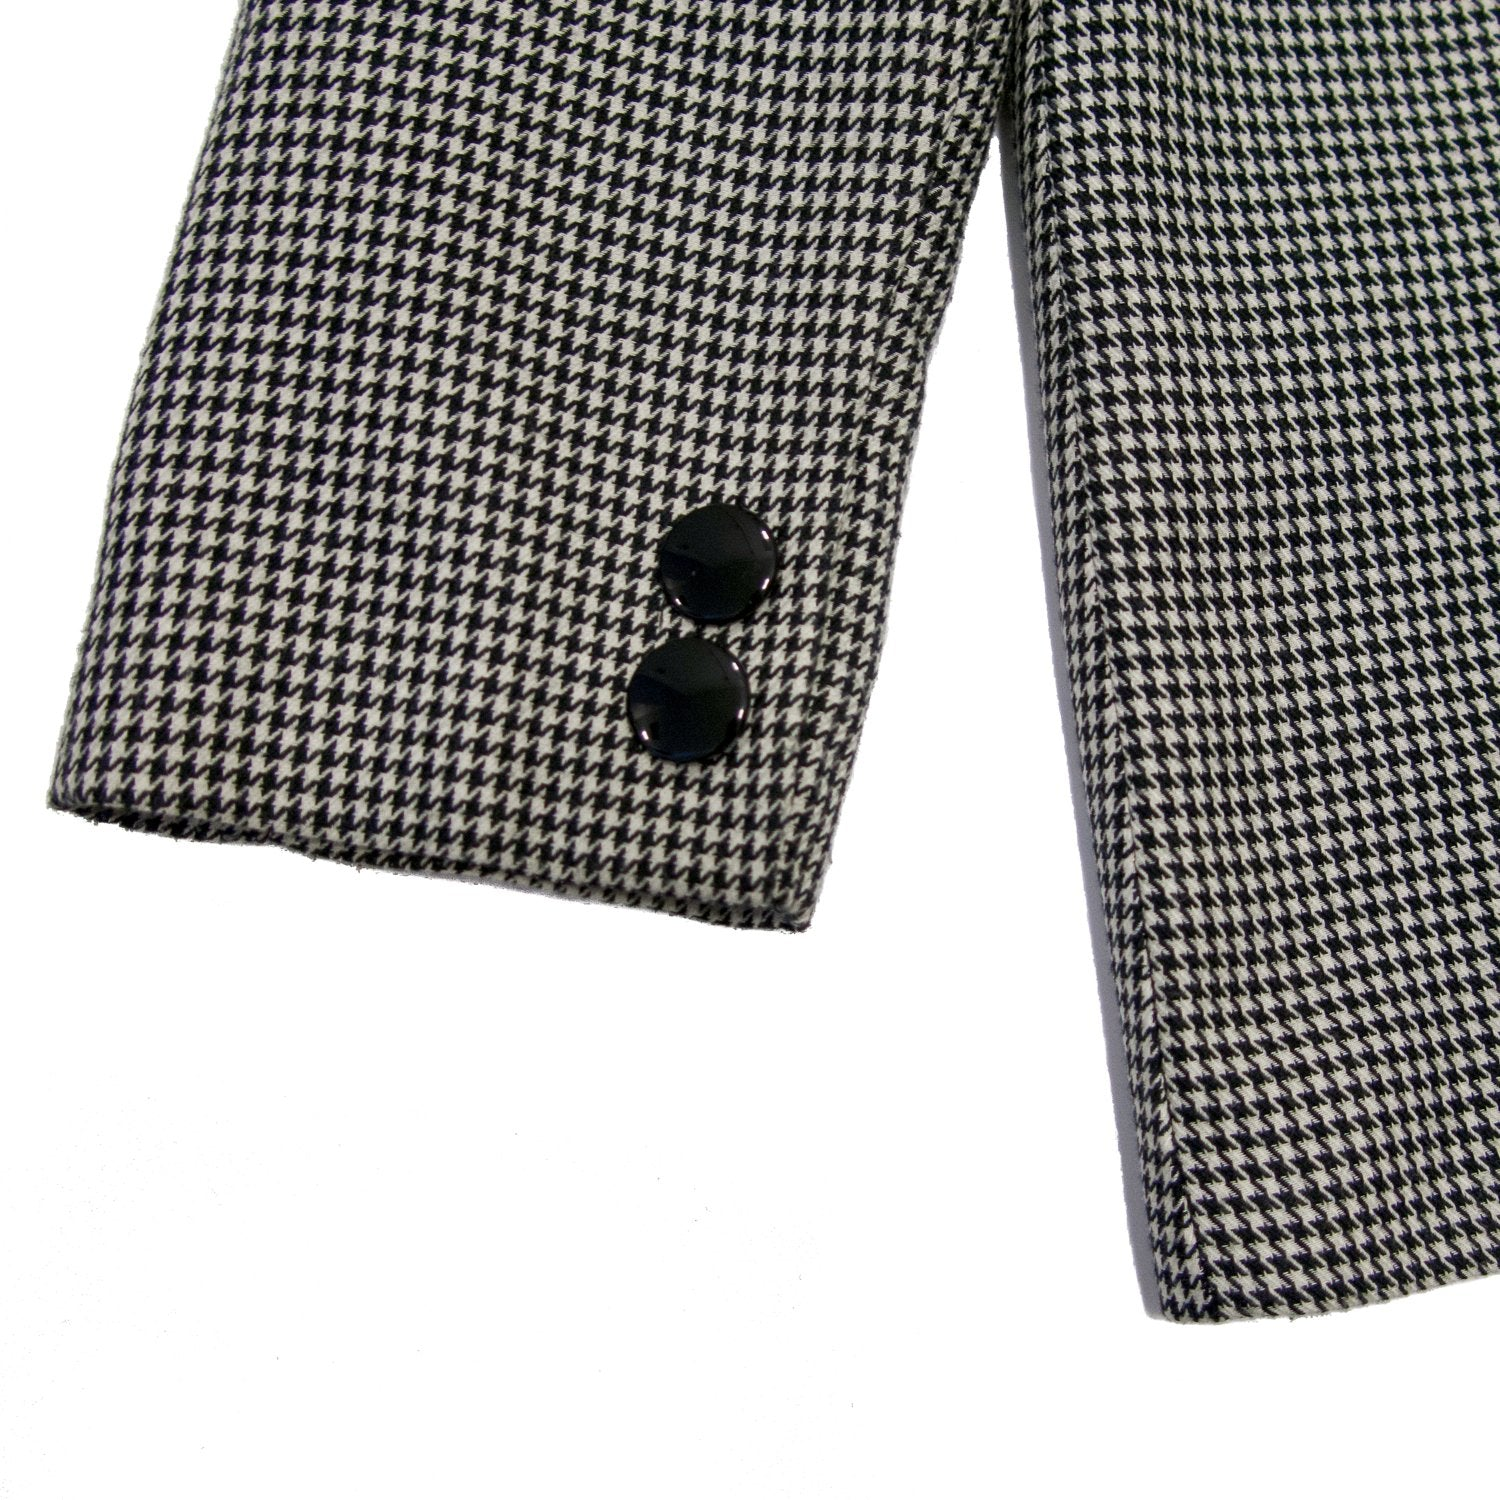 Second Room Vintage Clothing. Vintage black and white houndstooth print open blazer, fully lined in black, with two buttons on each cuff, and two front pockets. This blazer has two decorative buttons on the front, but the blazer is an open style, without any closure. Free North American shipping on all orders.